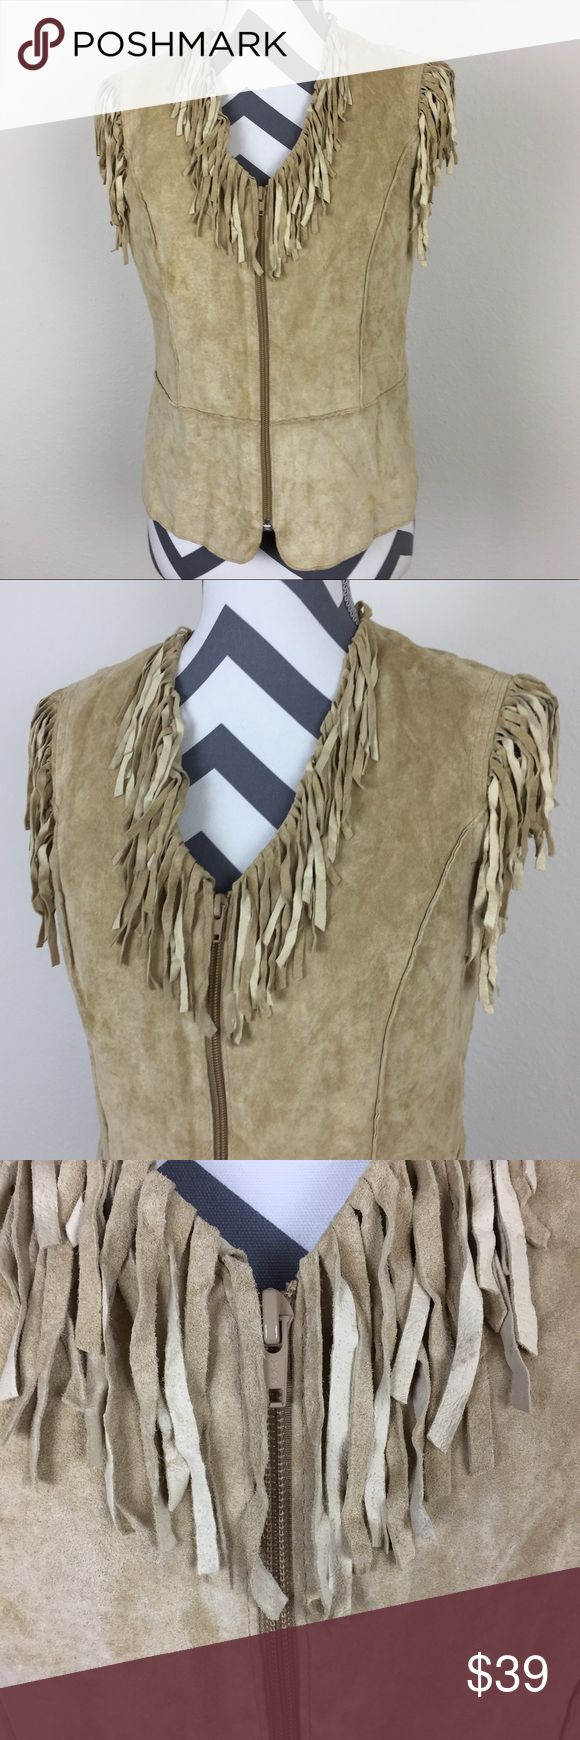 Revue Tan Suede Leather Fringe  Boho Vest Size 4 Perfect for festivals and summer events! Boho / hippy chic fringe suede leather vest. Zips up the front. Size 4. Revue Jackets & Coats Vests